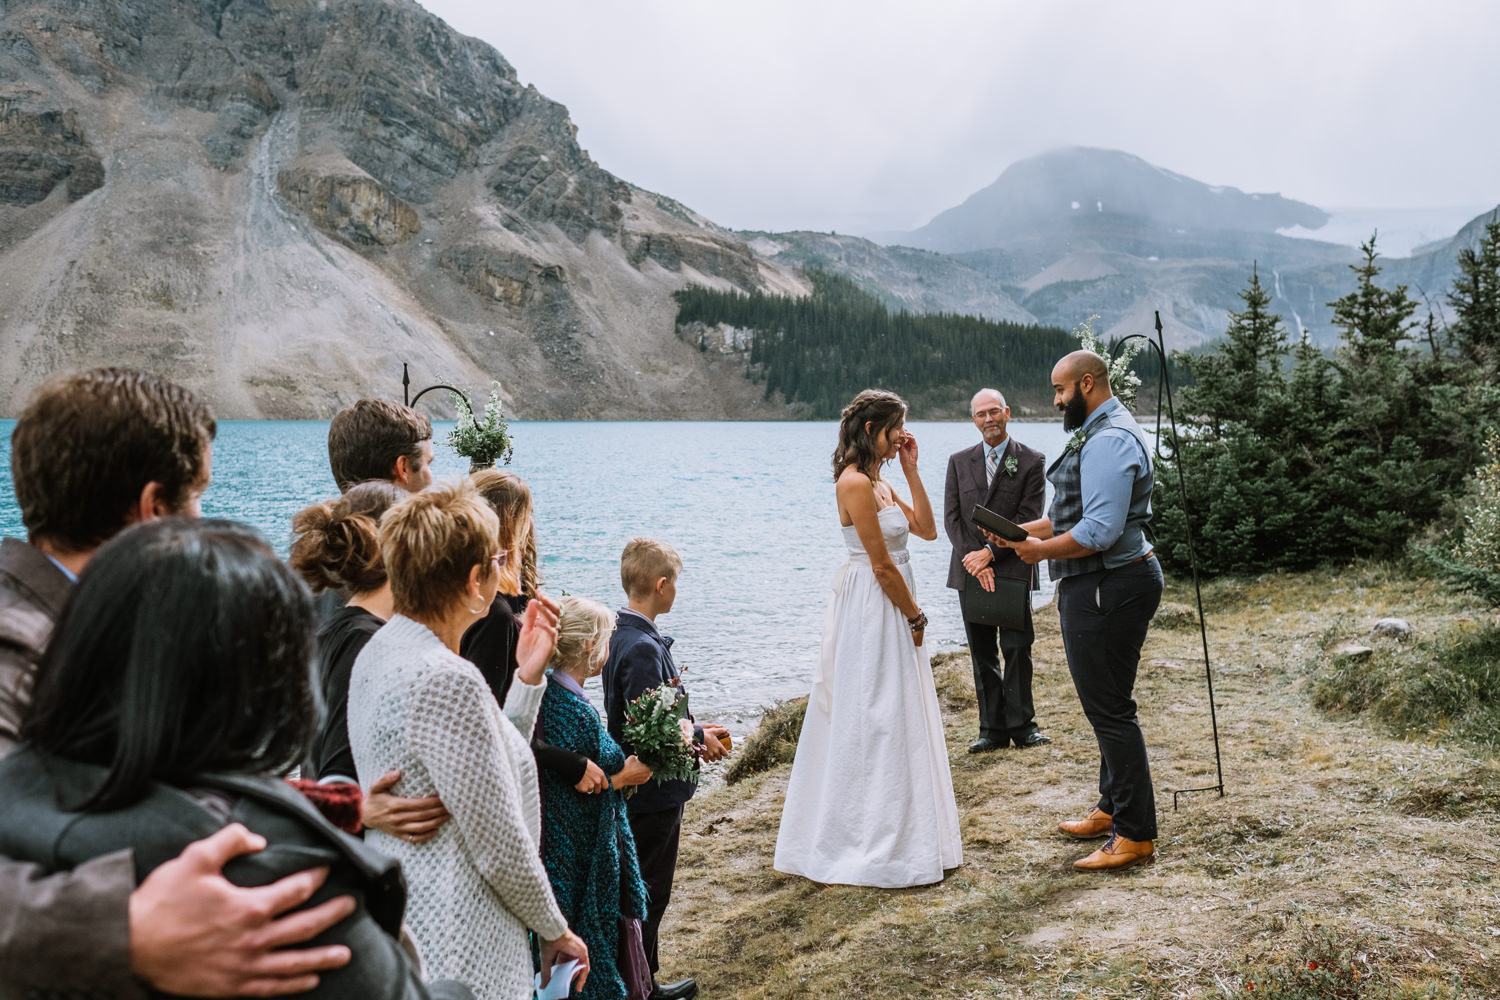 banff-wedding-photographer-packages-10029